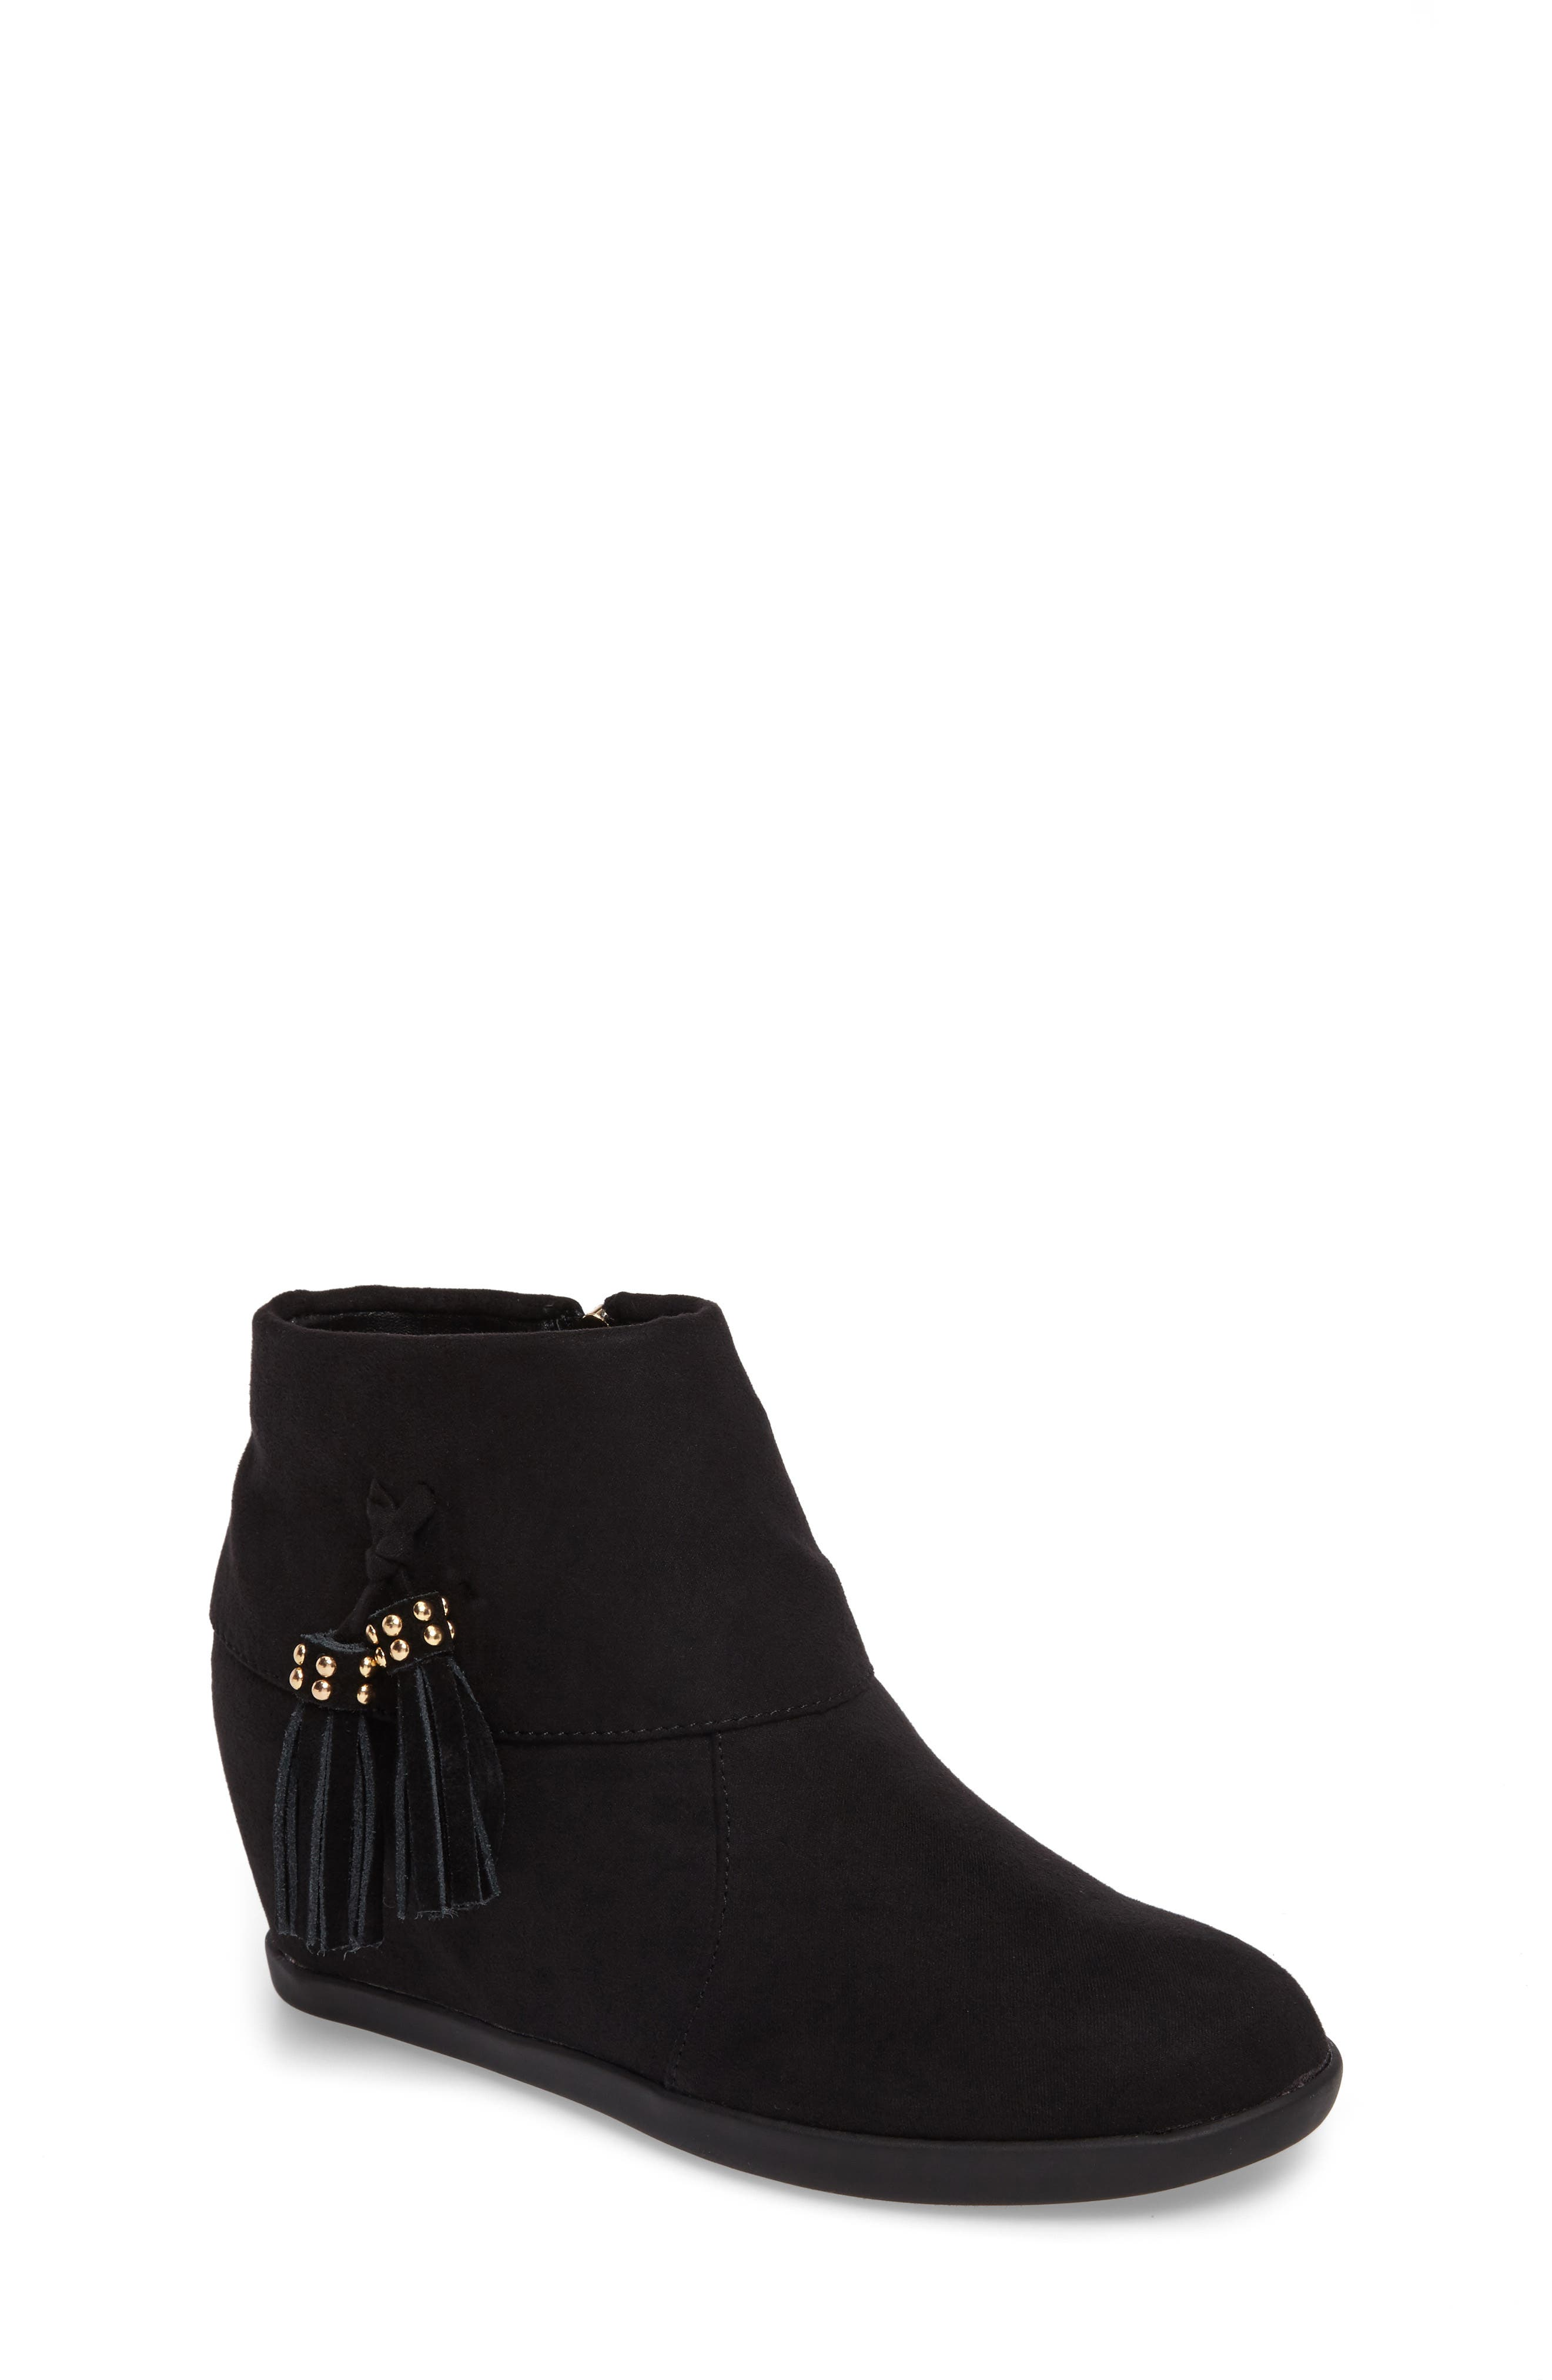 Valentina Cuff Concealed Wedge Bootie,                             Main thumbnail 1, color,                             Black